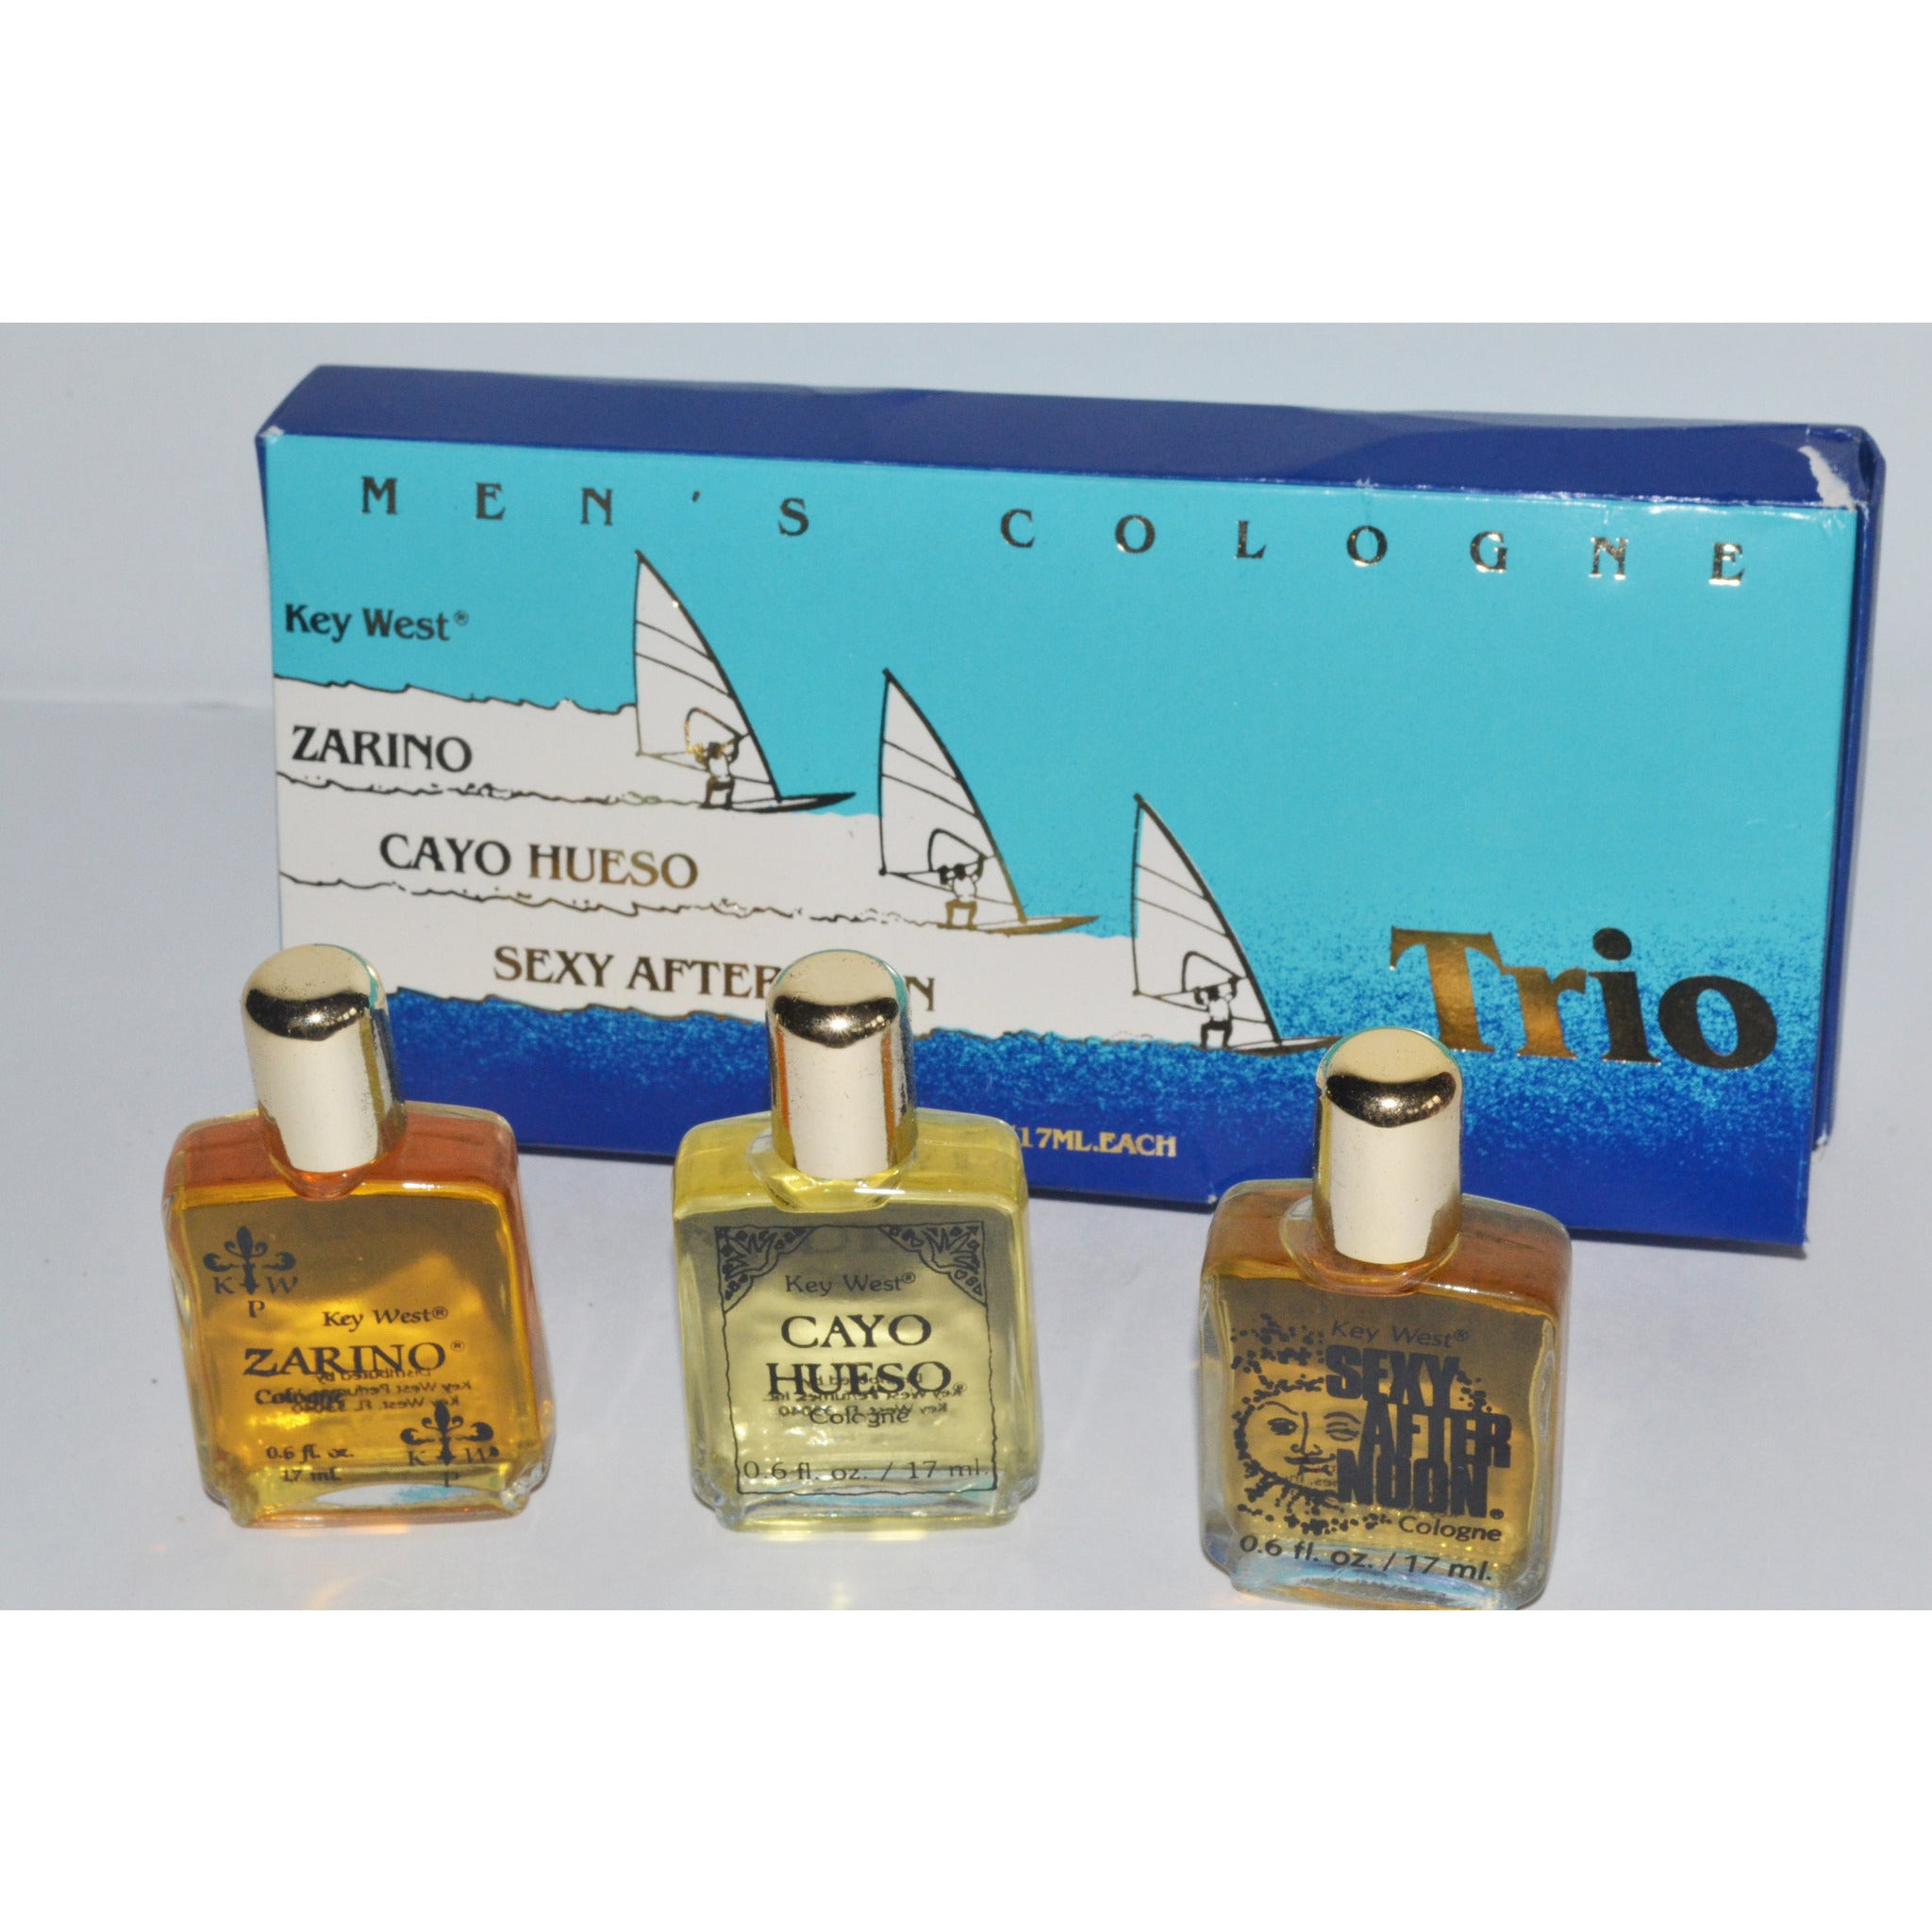 Vintage Key West Men's Trio Cologne - Zarino, Cayo Hueso, Sexy Afternoon